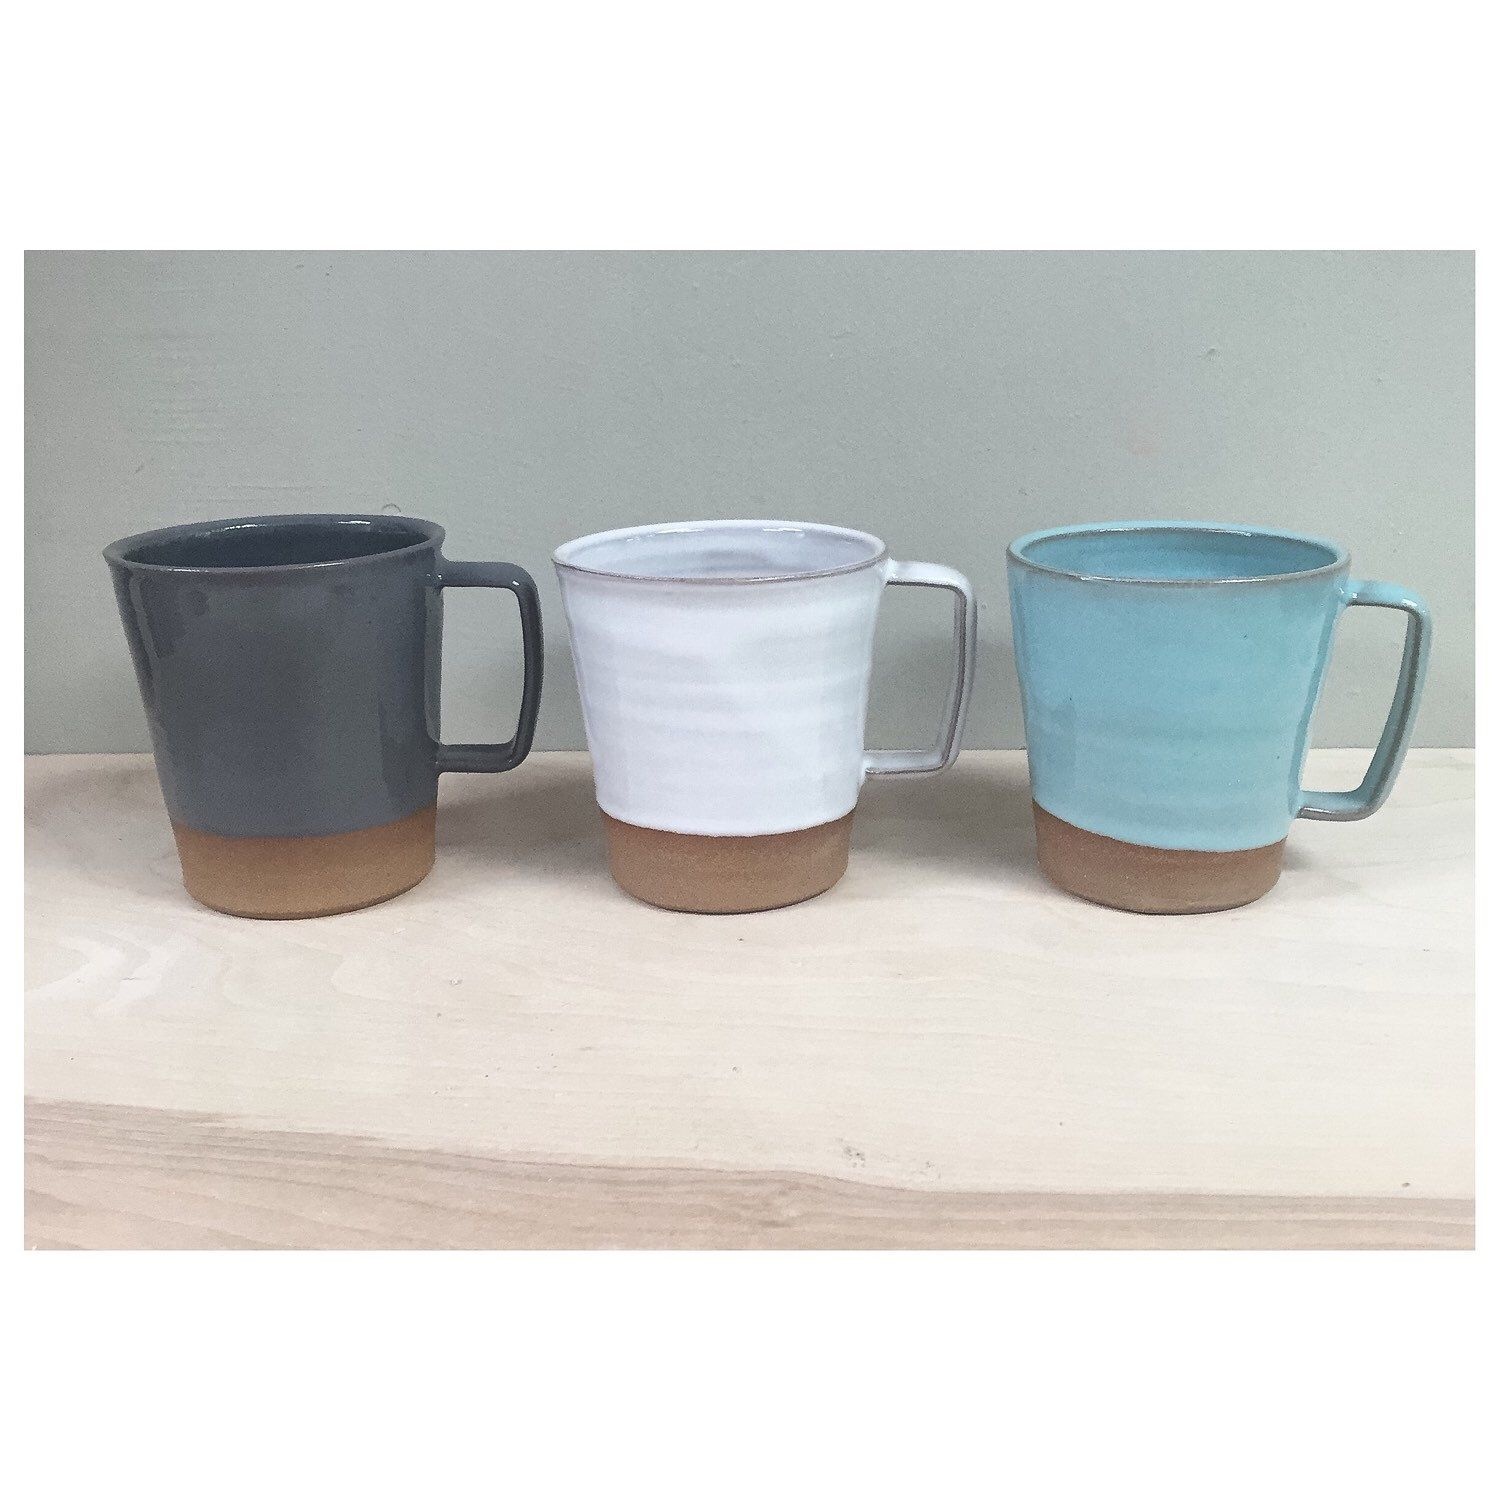 4 Contemporary Stoneware Mugs 10oz Save 10% And Shipping Costs By  RhynoClayworks On Etsy Https